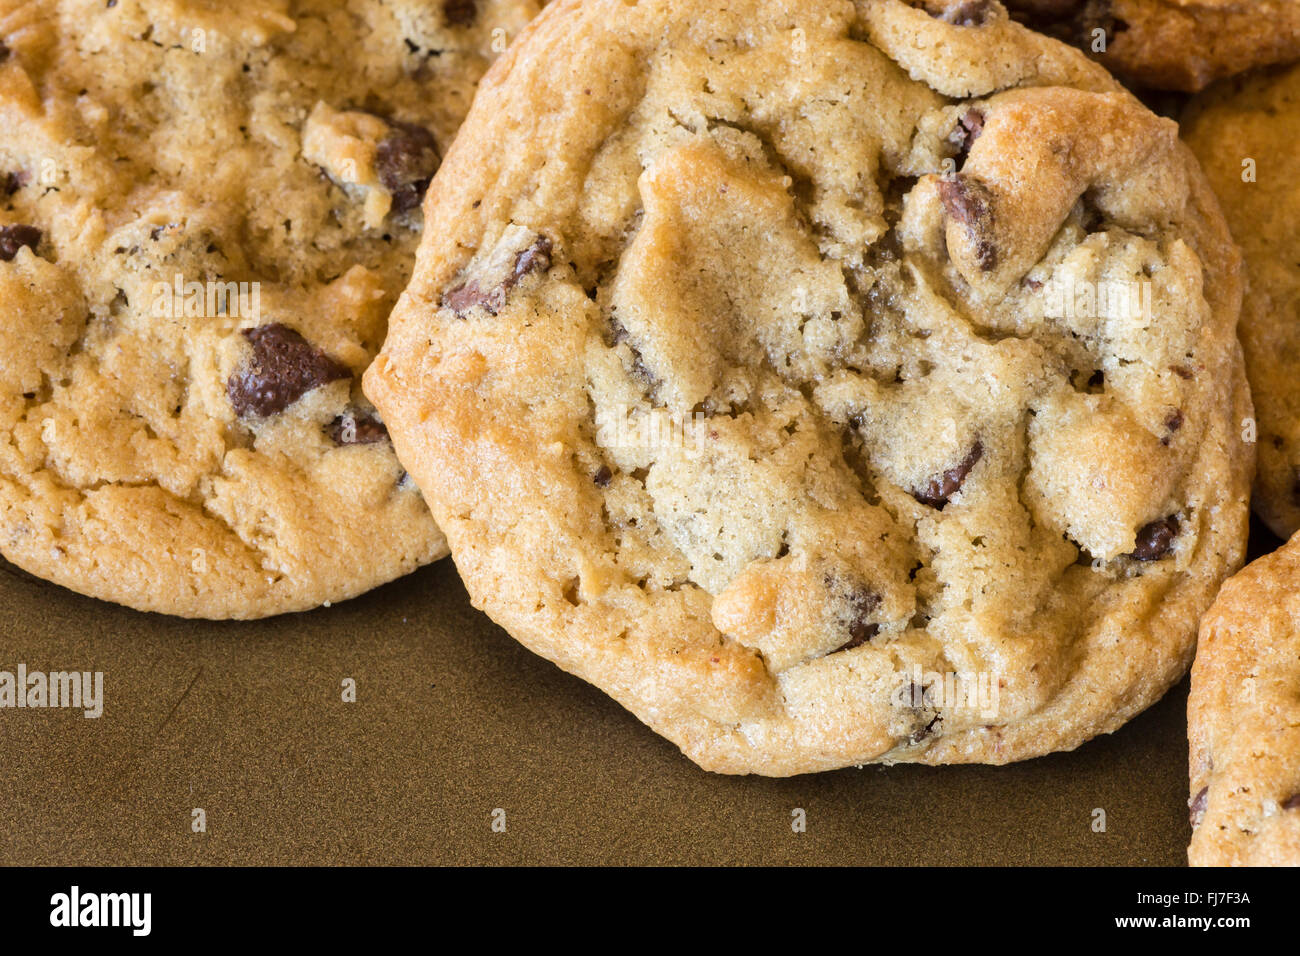 Homemade chocolate chip cookies on baking tray Stock Photo